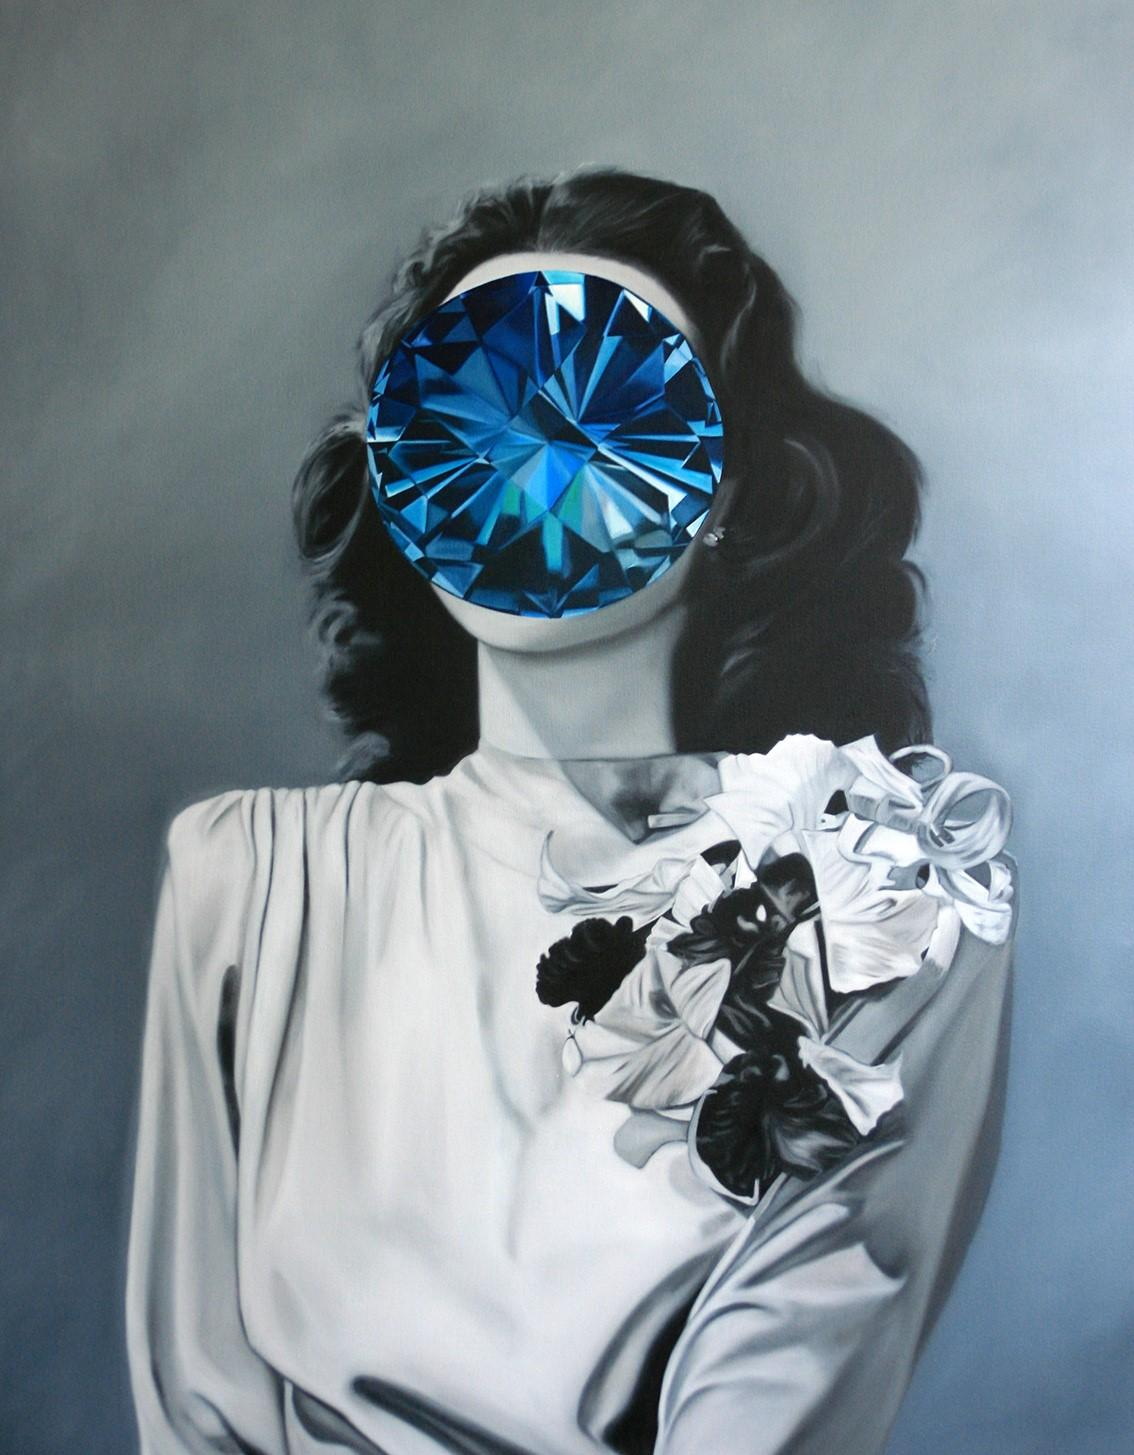 Topaz from the Mirror Stone series (Portrait Painting - Hedy Lamarr)